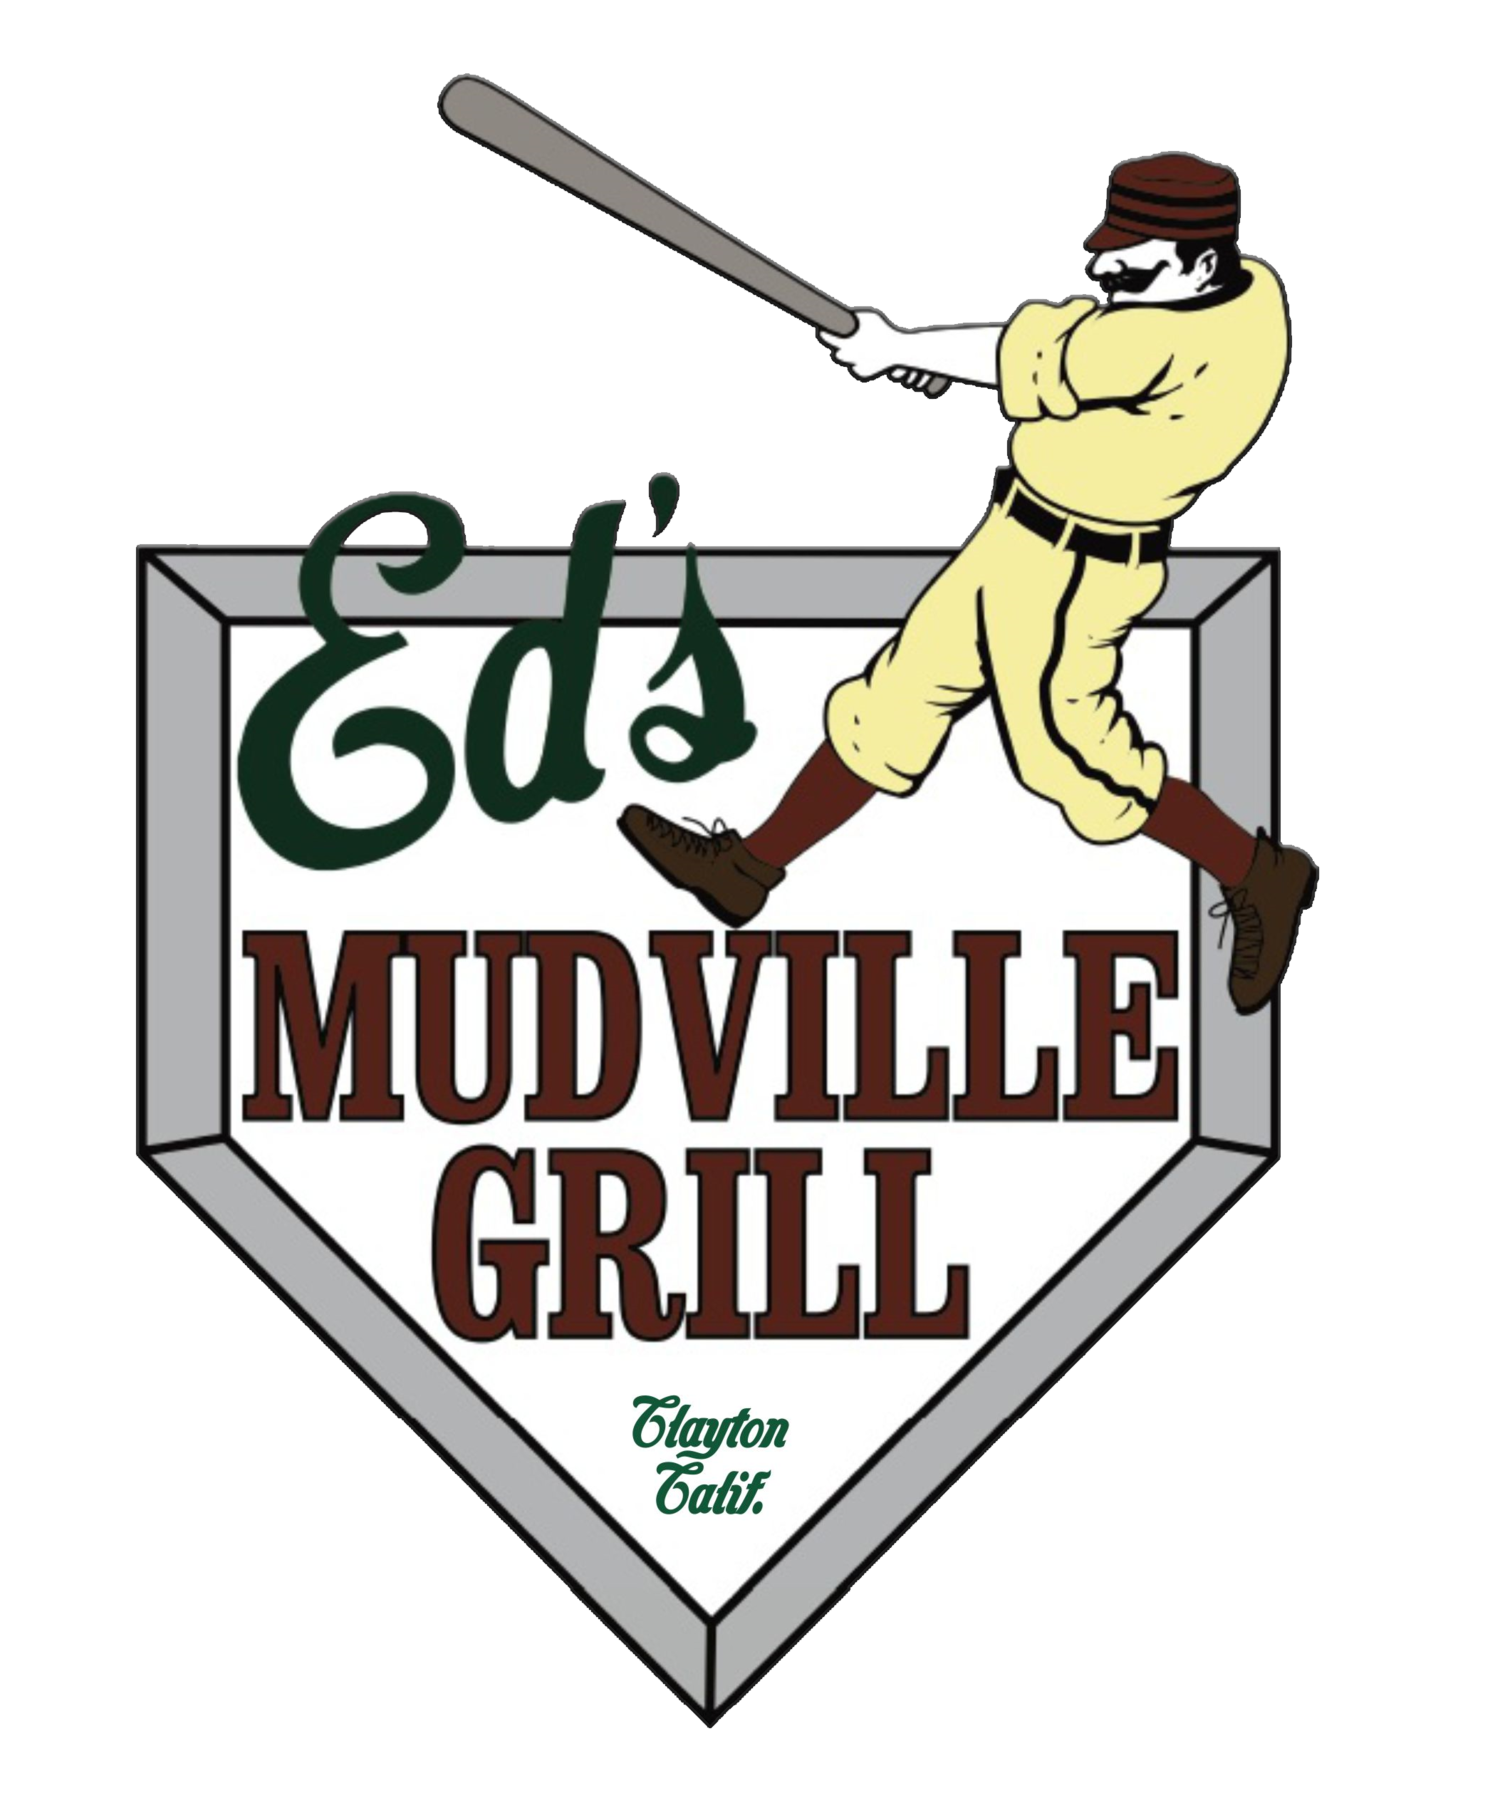 Ed's Mudville Grill